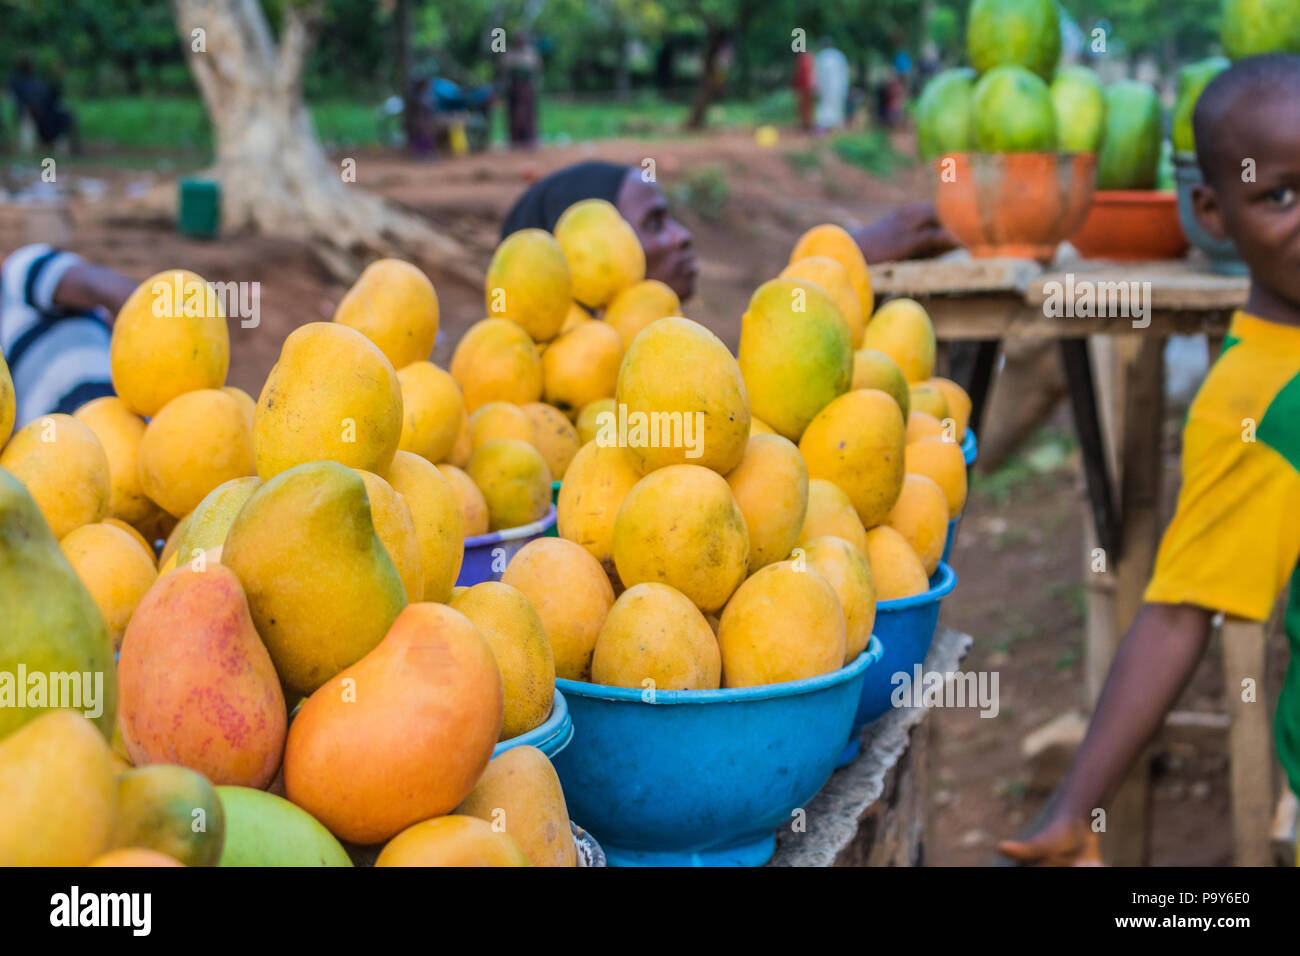 Yellow And Green African Mango Fruits Arranged In Small Portions For Sale In A Market Stock Photo Alamy